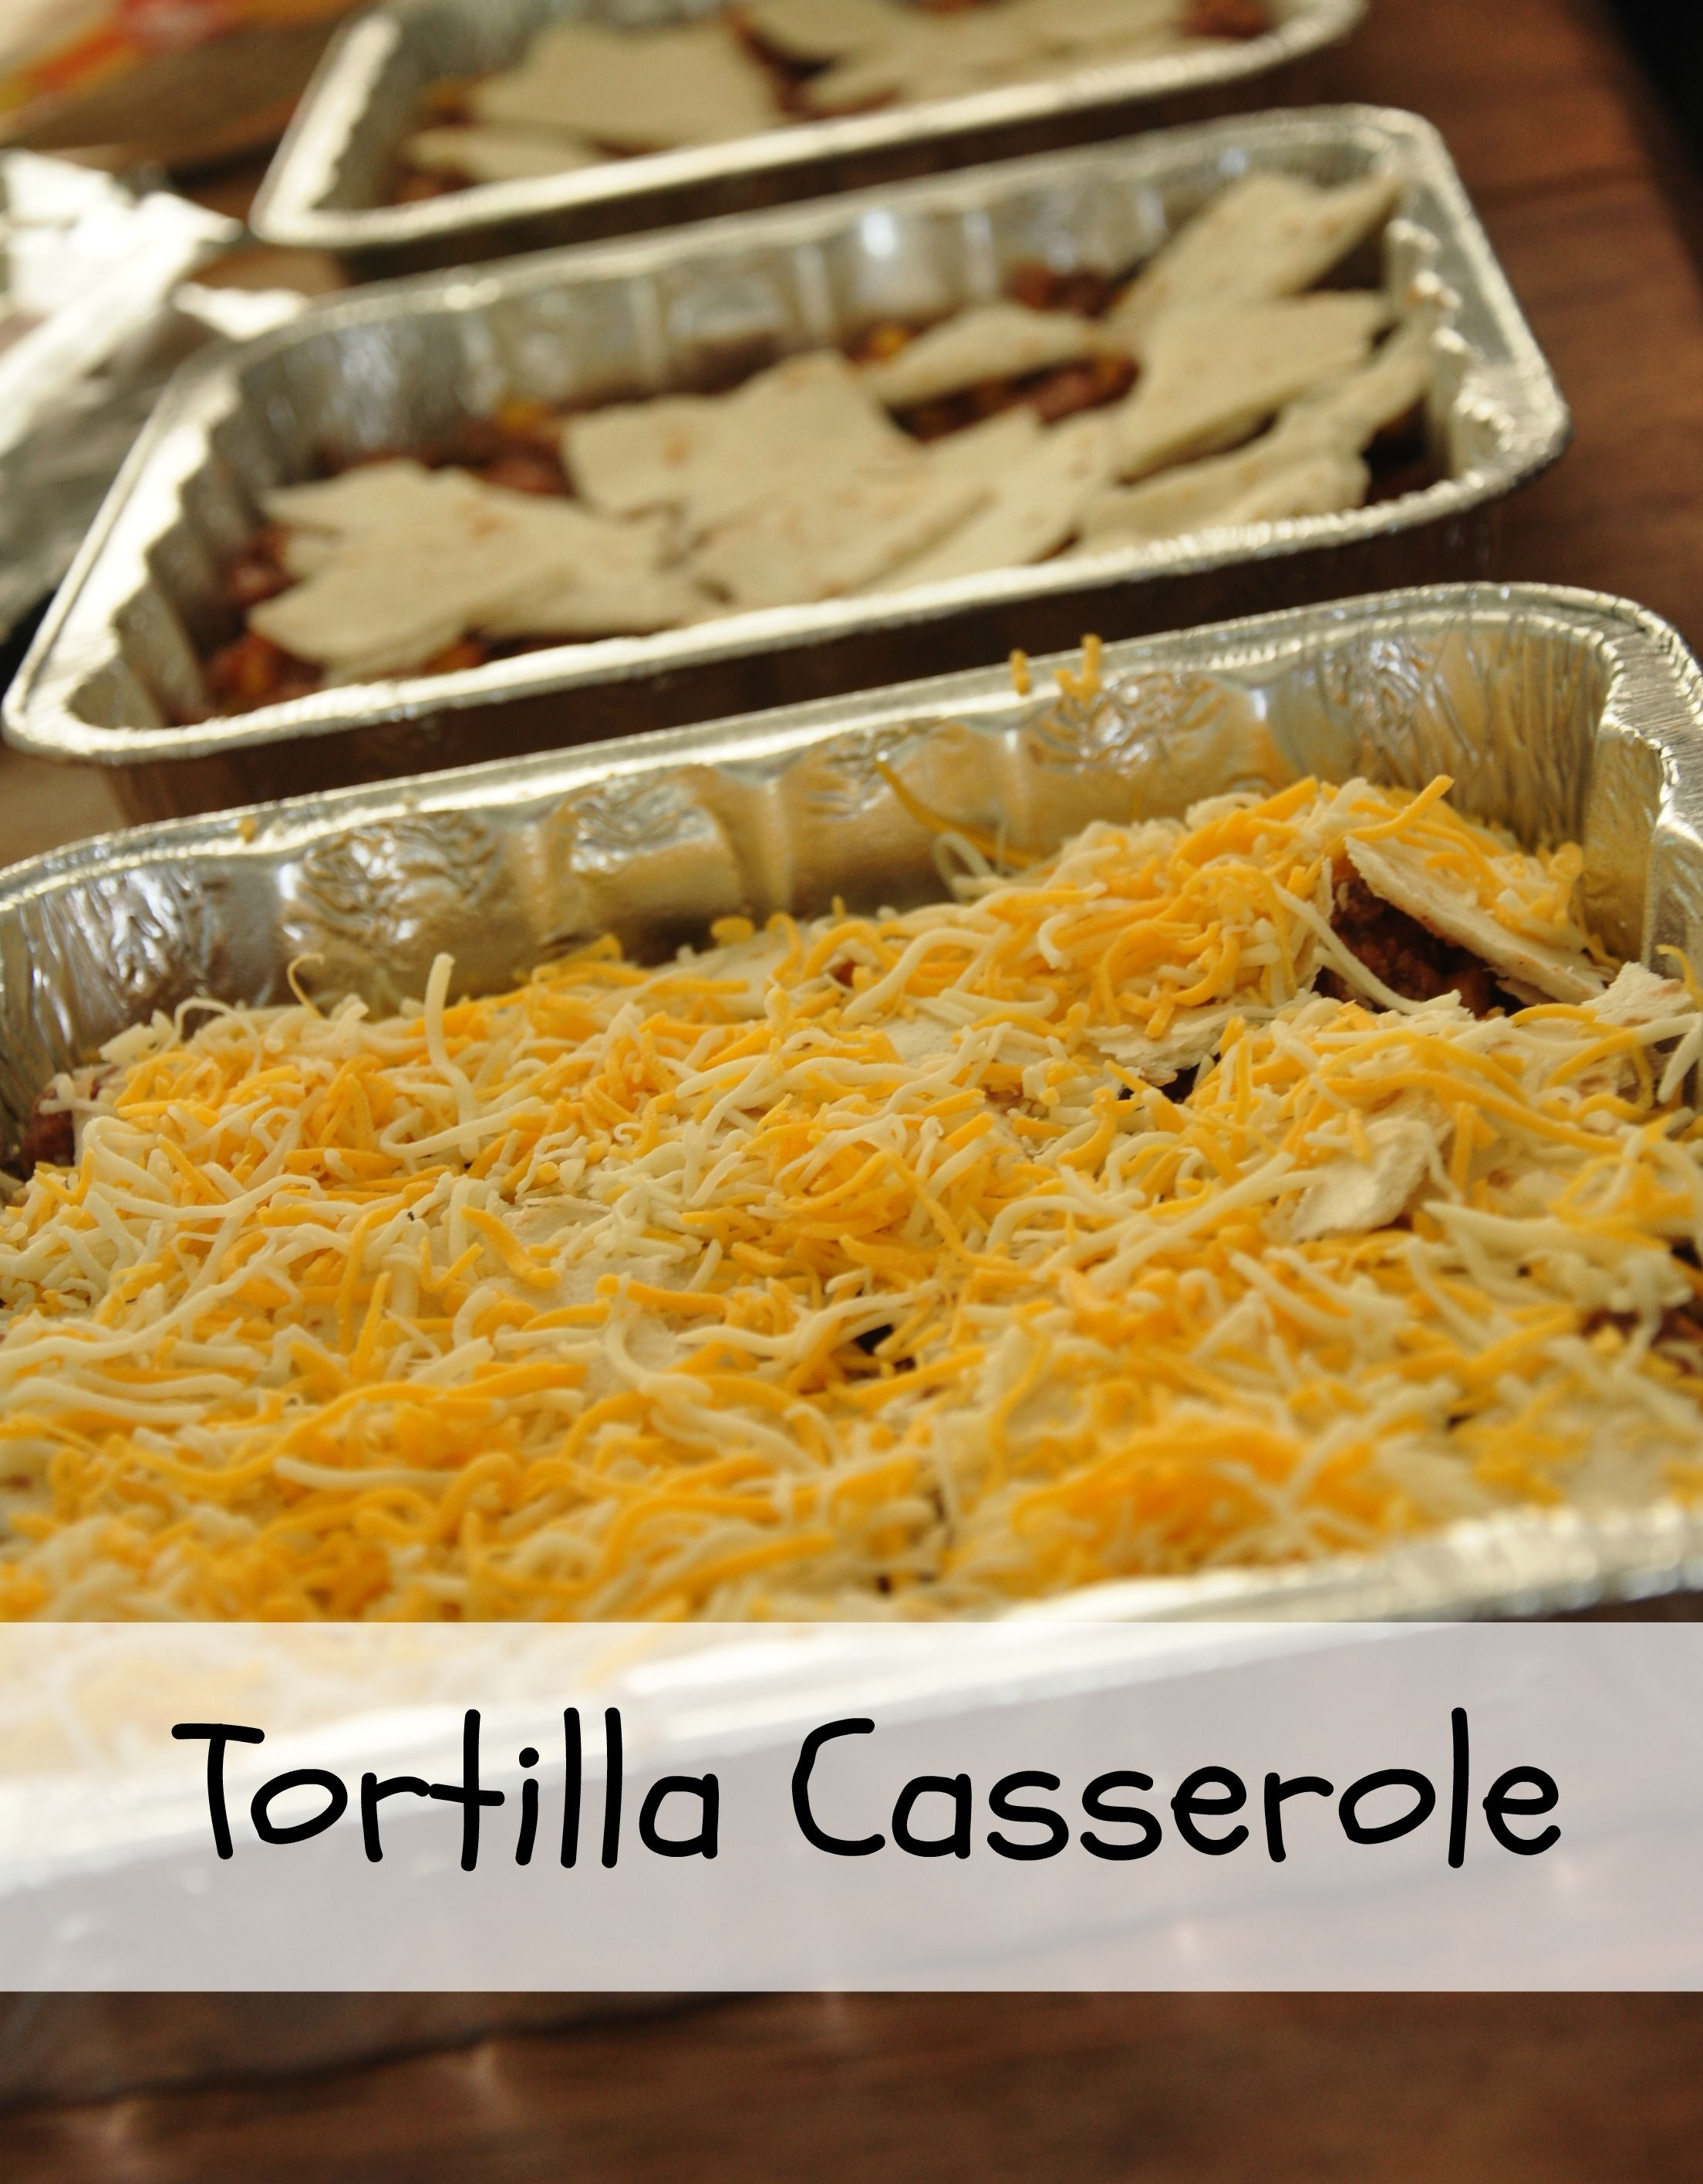 Finding a yummy dinner that everyone in the family will eat can get tricky especially if you have a picky eater. This Beef Tortilla Casserole is a perfect family dinner and it's EASY to throw together. Even better news, it makes the perfect FREEZER MEAL! You can double the recipe one night putting one together …